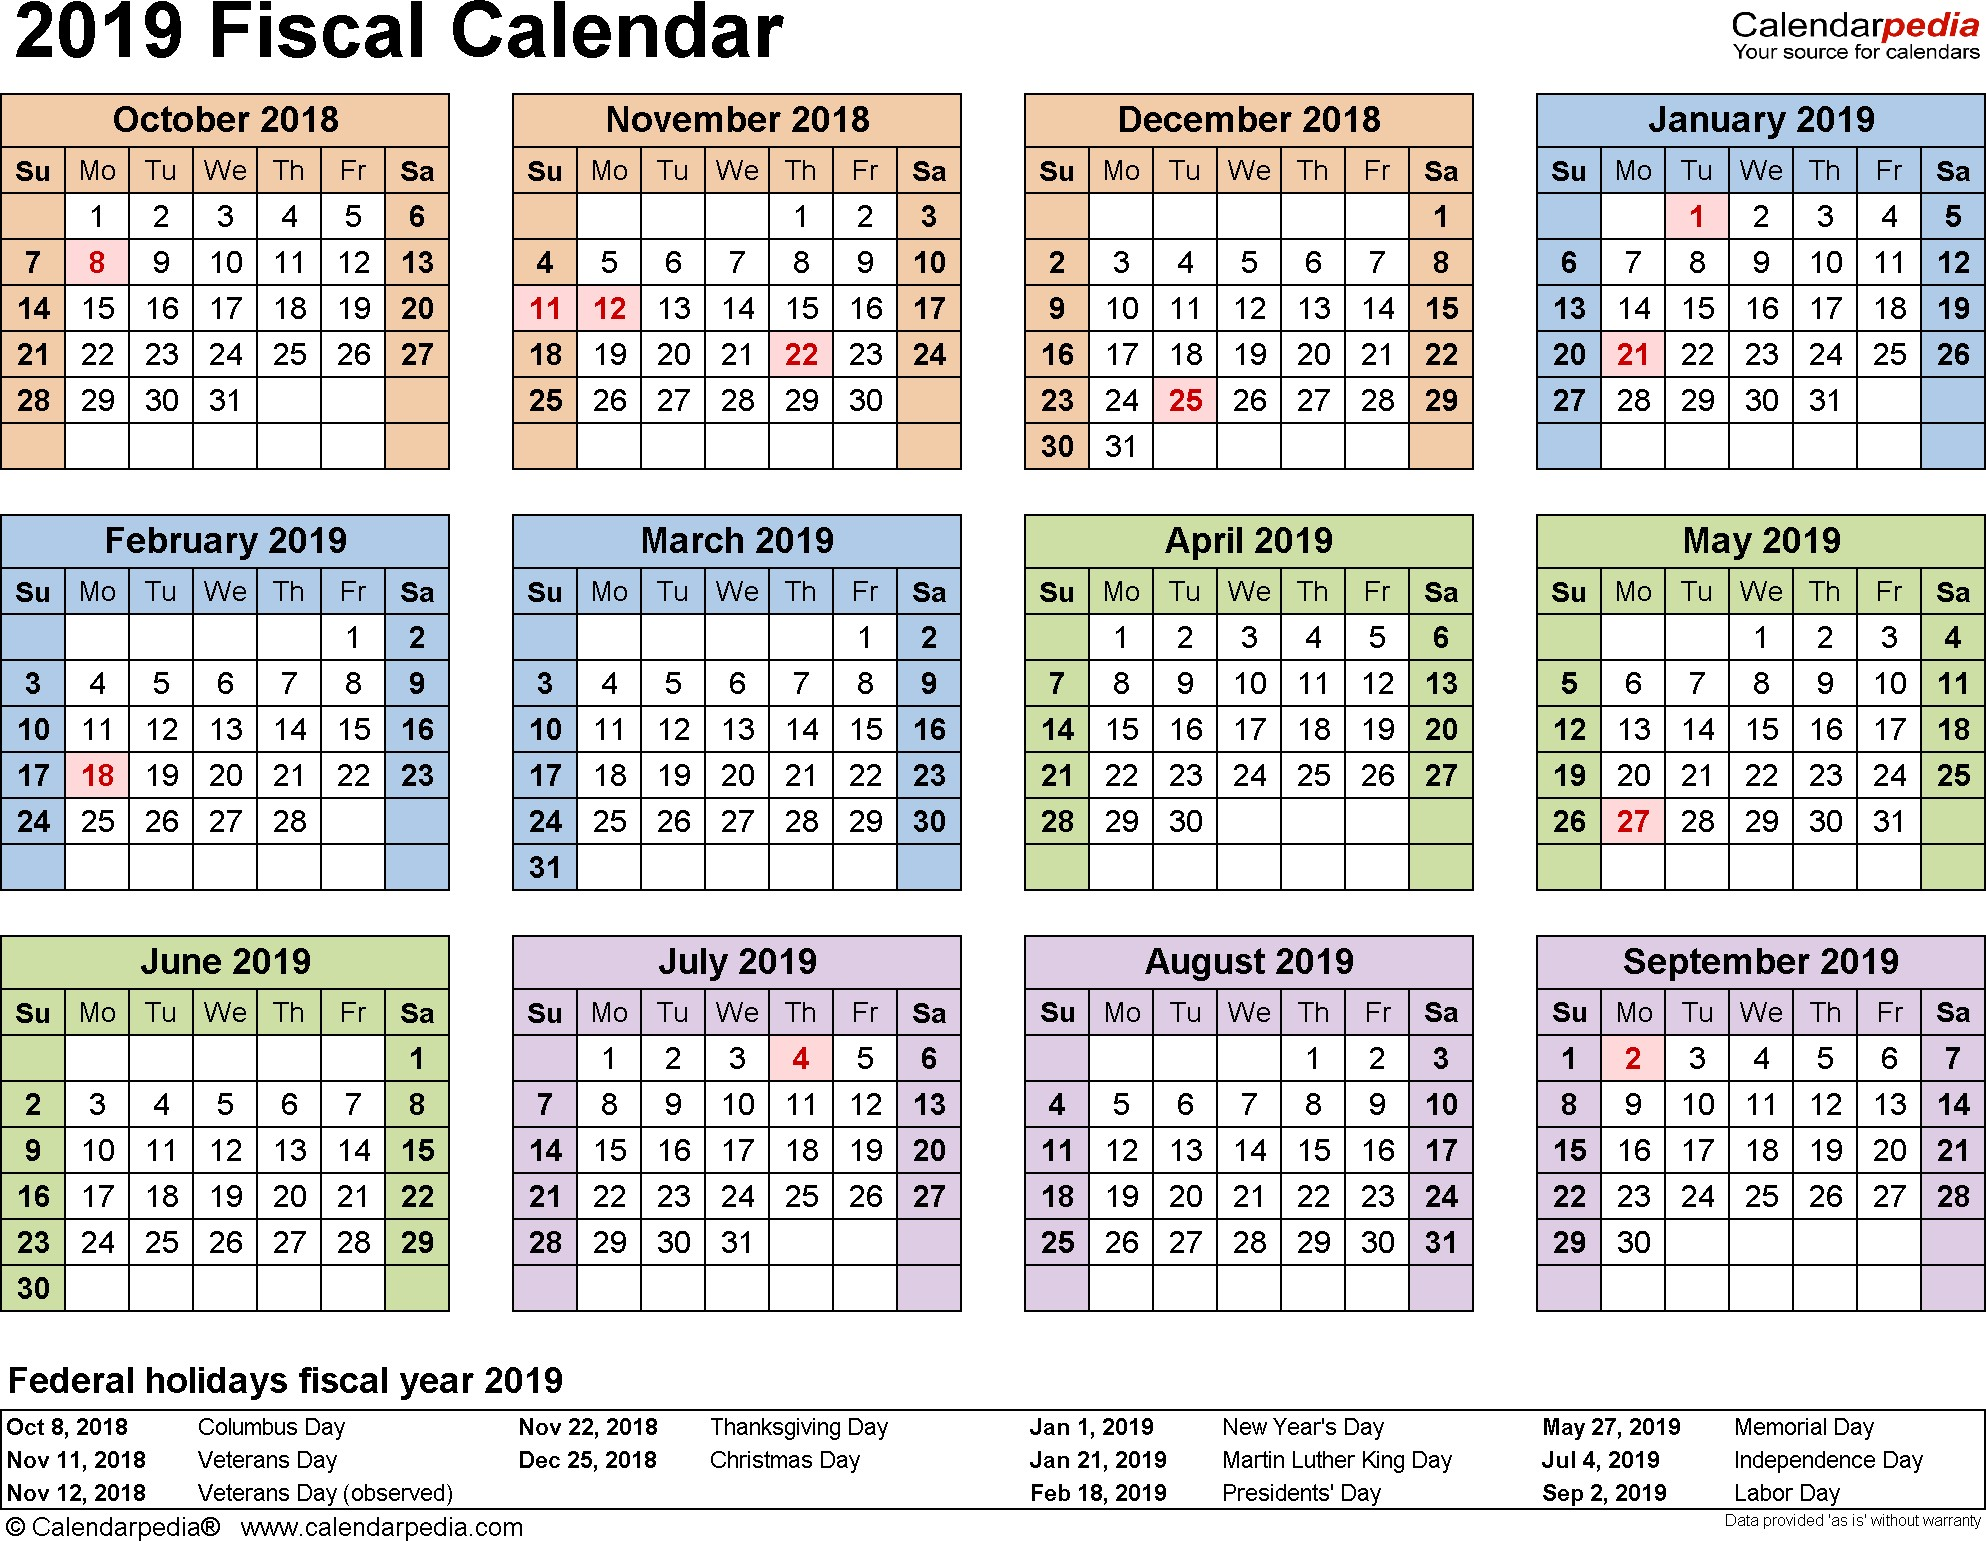 National Day Calendar March Más Populares Fiscal Calendars 2019 as Free Printable Word Templates Of National Day Calendar March Más Populares asian Festivals Big Holidays and events